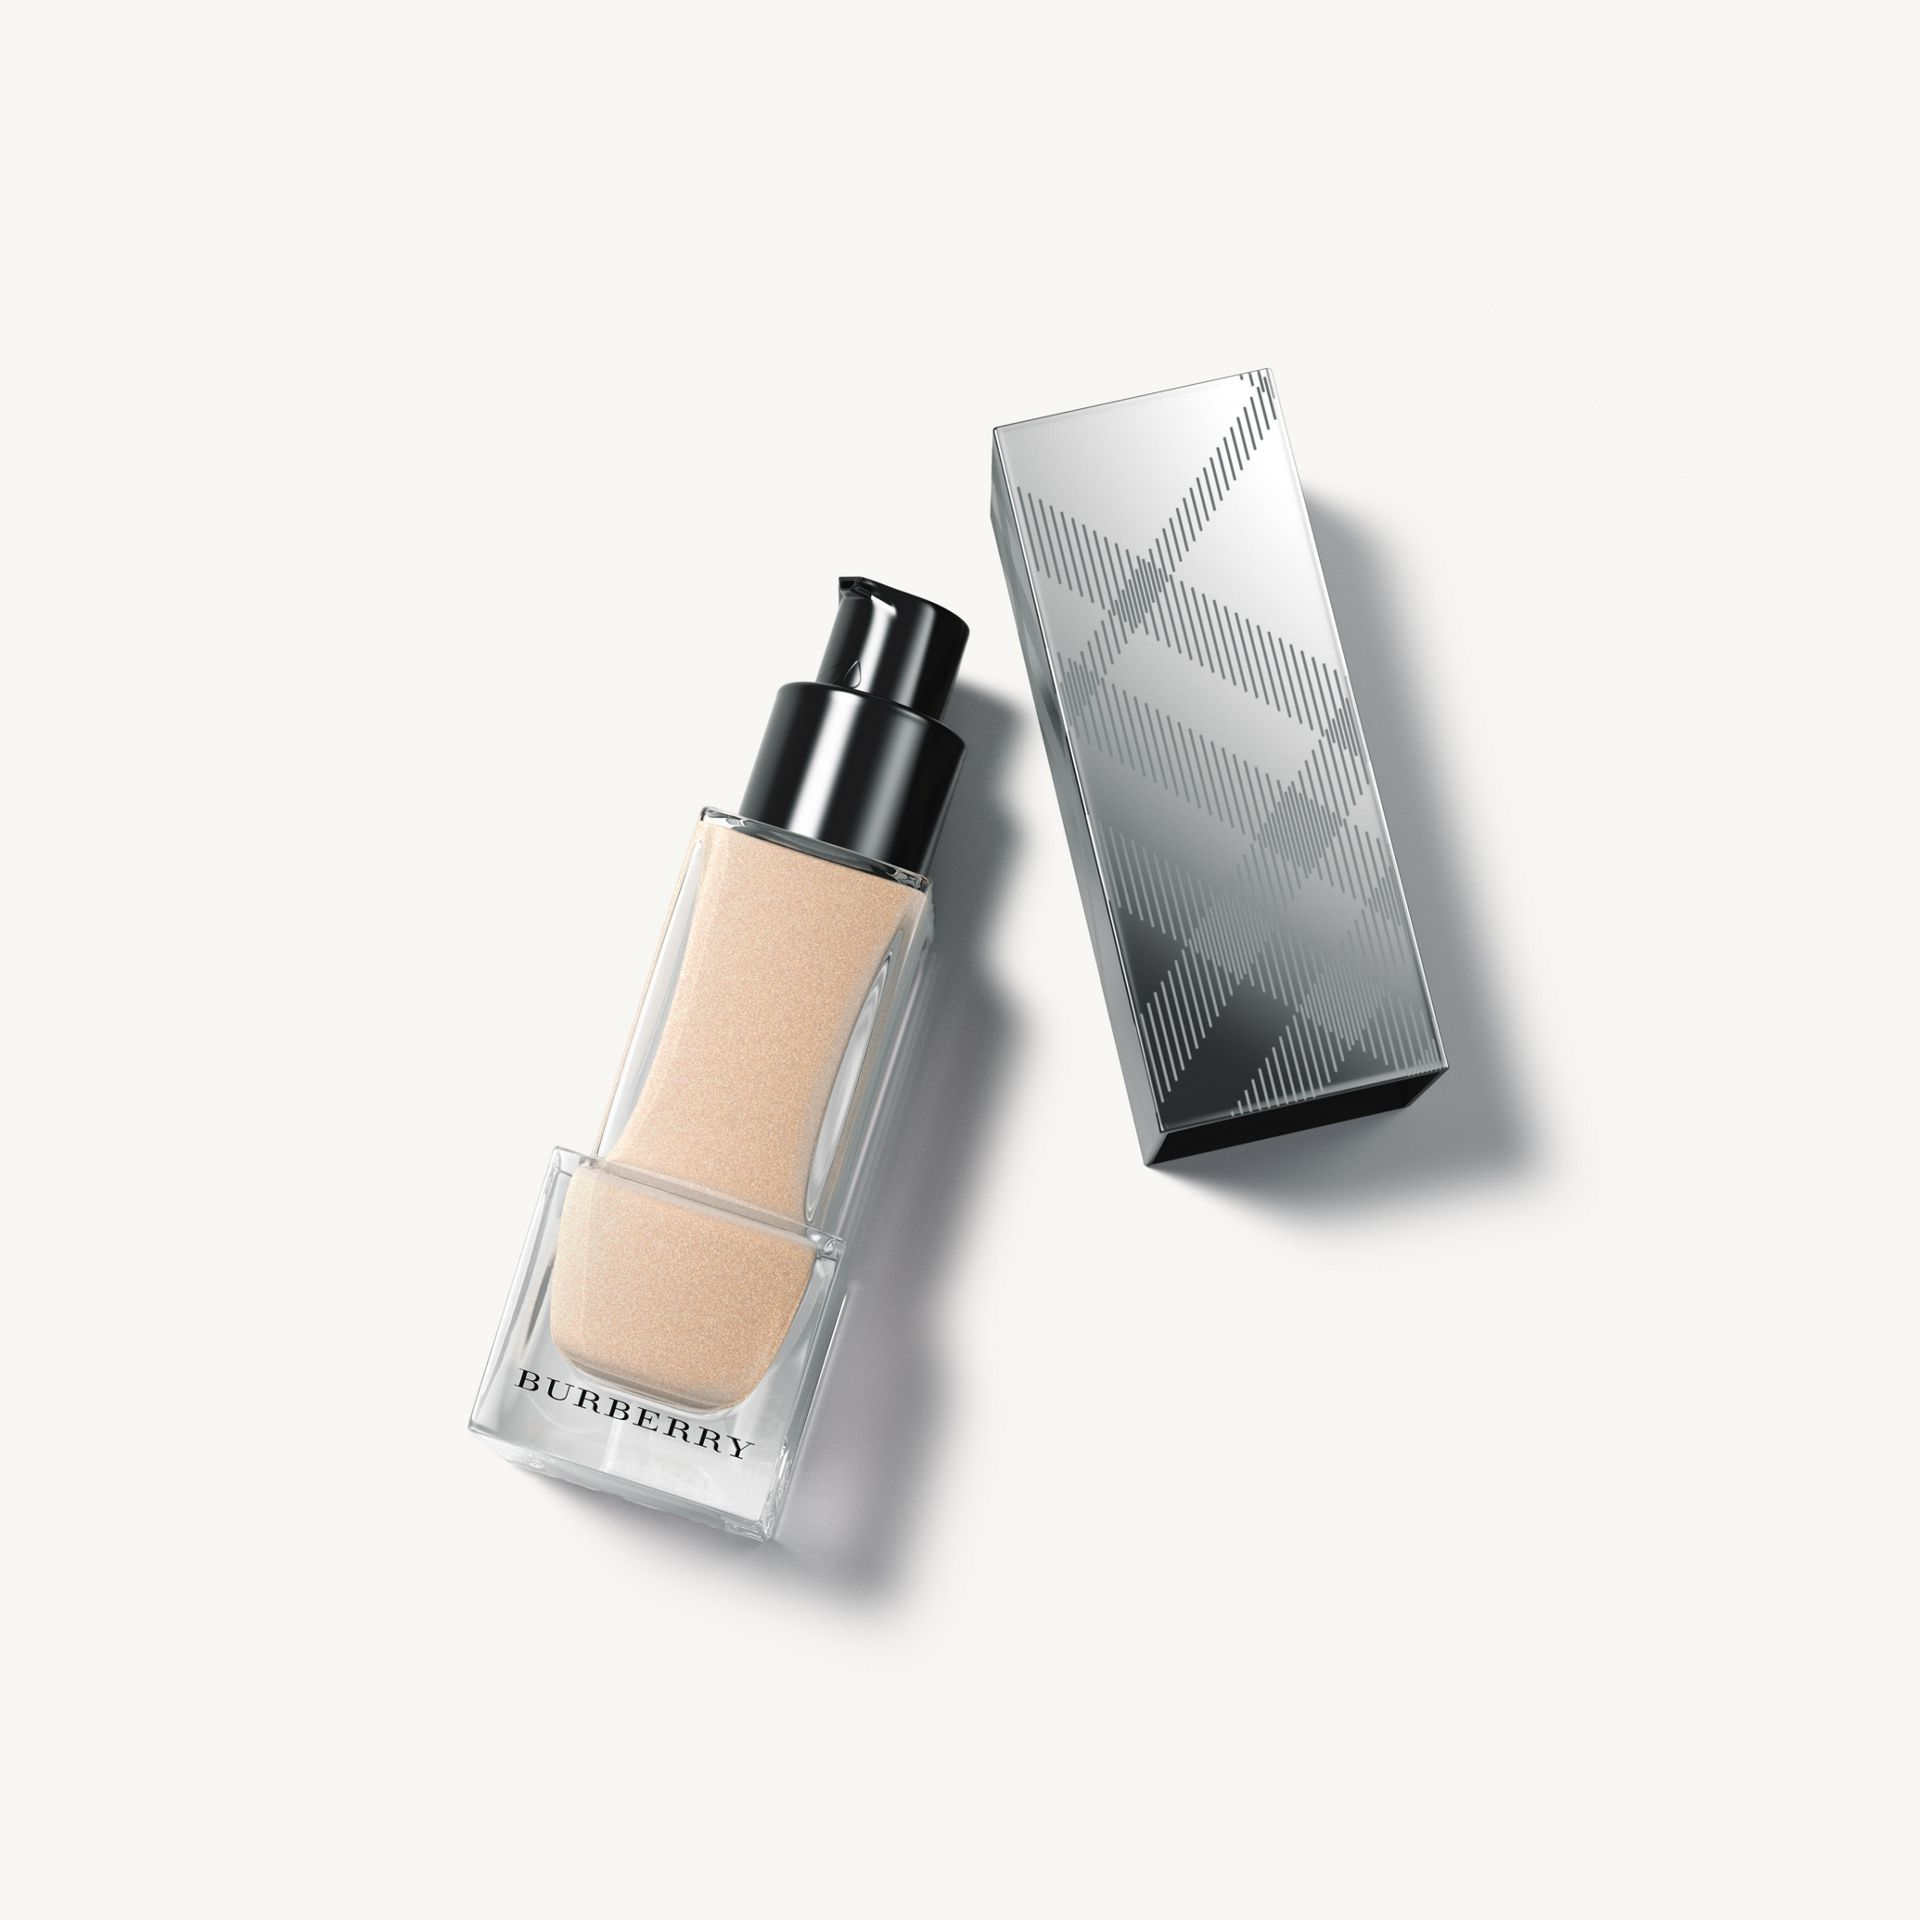 Основа под макияж Fresh Glow Luminous Fluid Base, Nude Radiance № 01 (№ 01) - Для женщин | Burberry - изображение 0